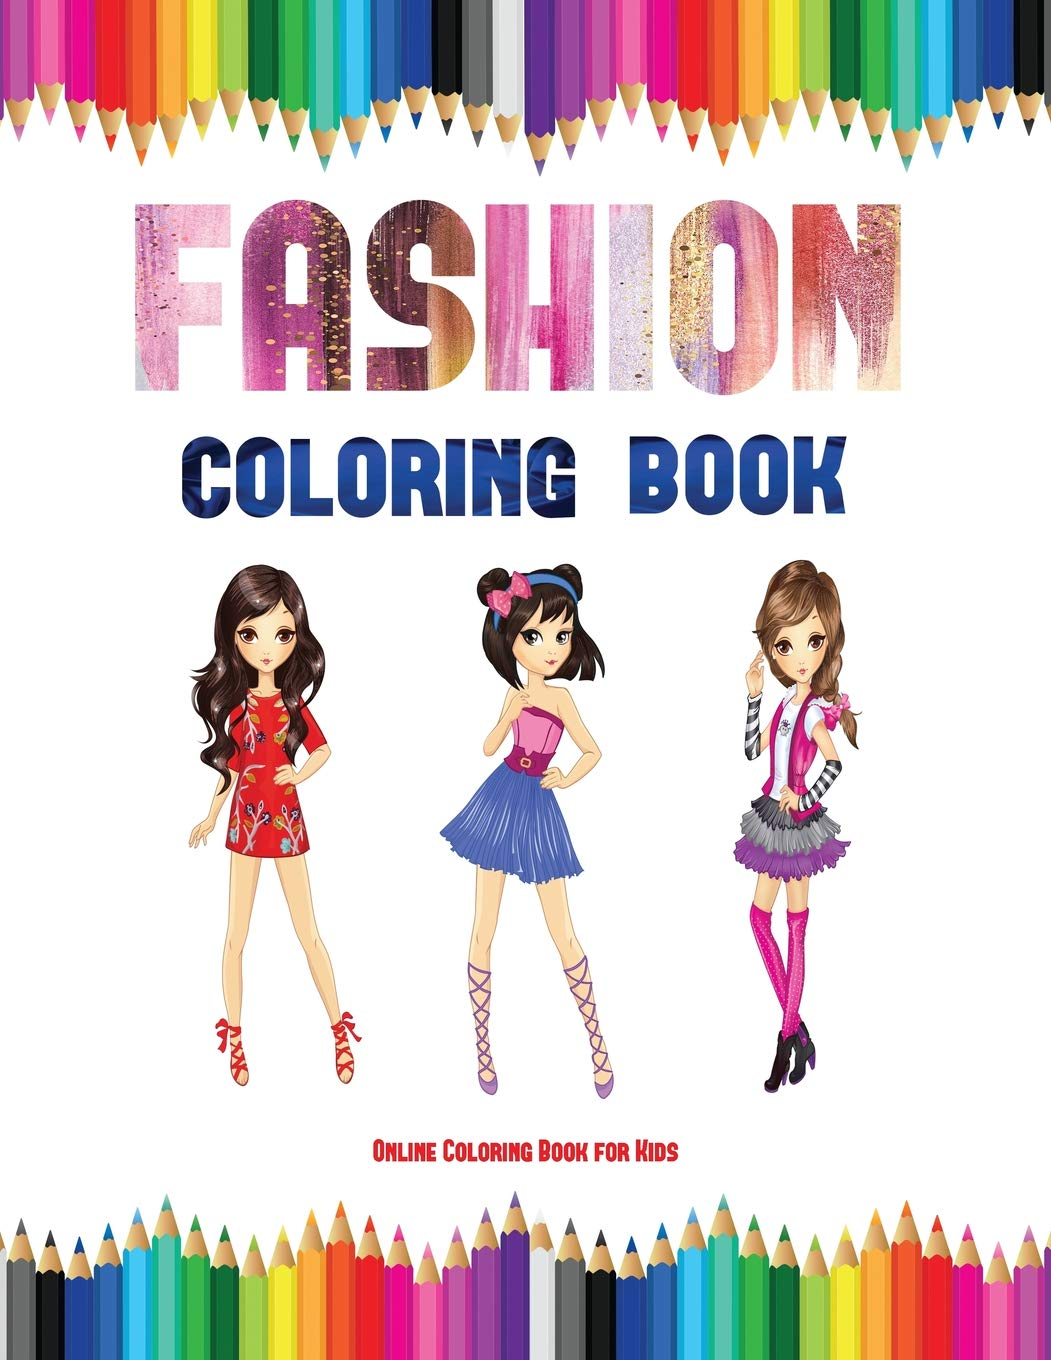 Online Coloring Book For Kids (Fashion Coloring Book): 40 Fashion